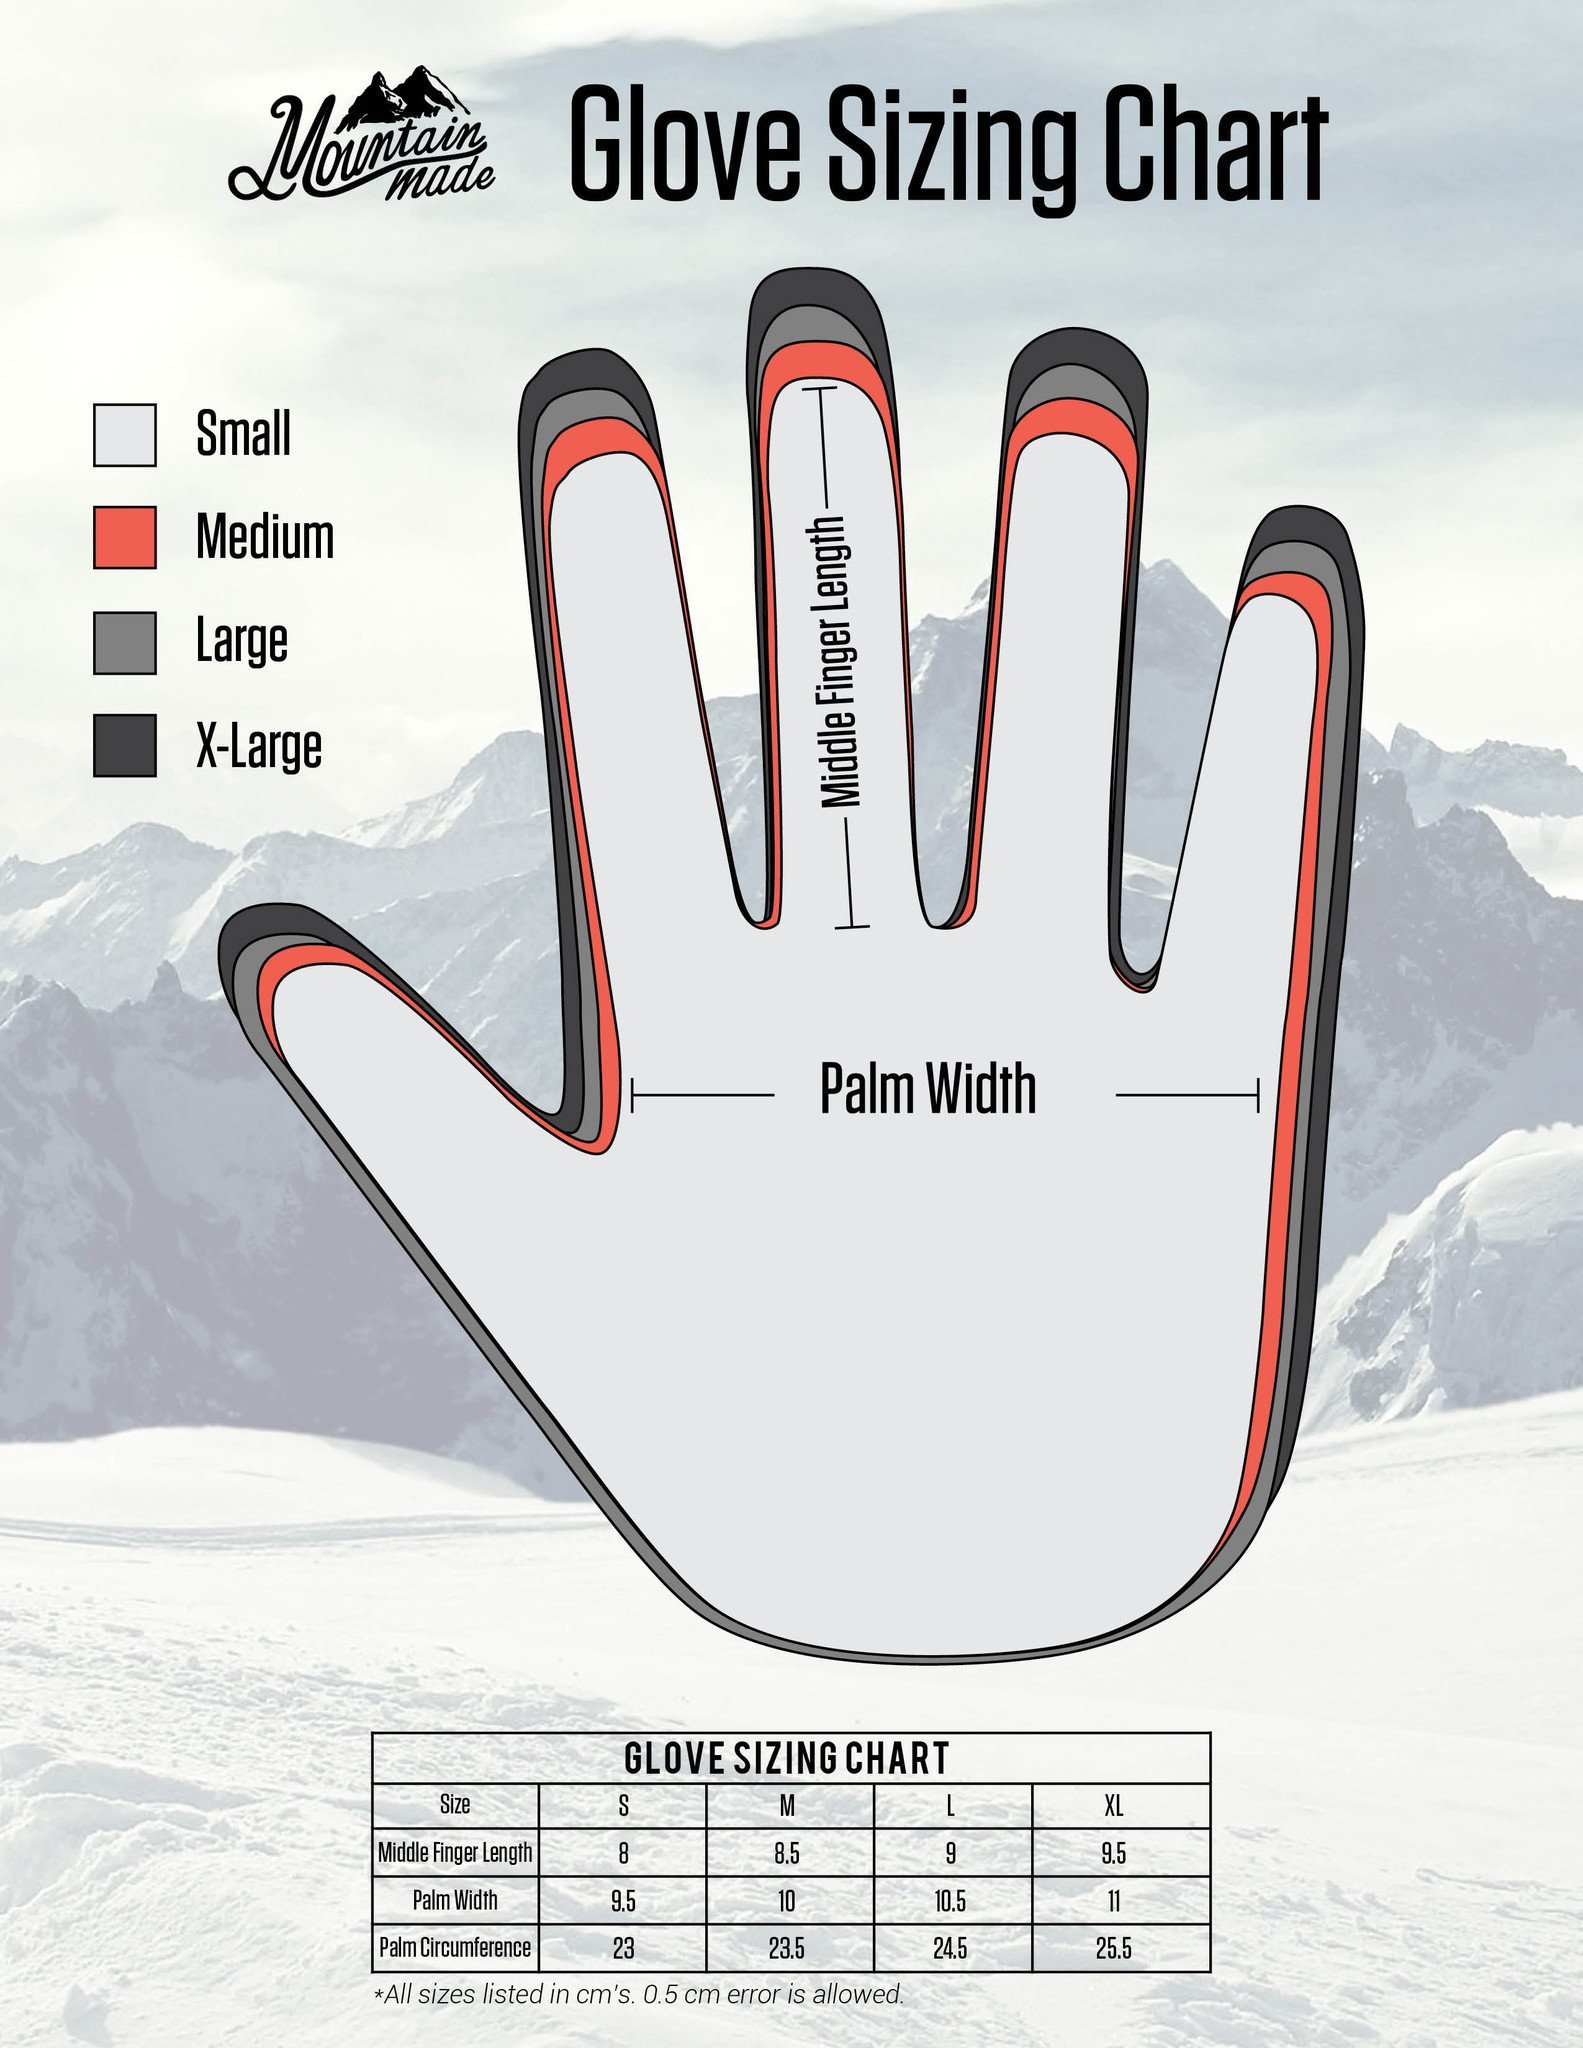 Mountain Made Cold Weather Gloves for Men and Women 2.0 with NEW UPGRADED ZIPPPERS,black,large by Mountain Made (Image #7)